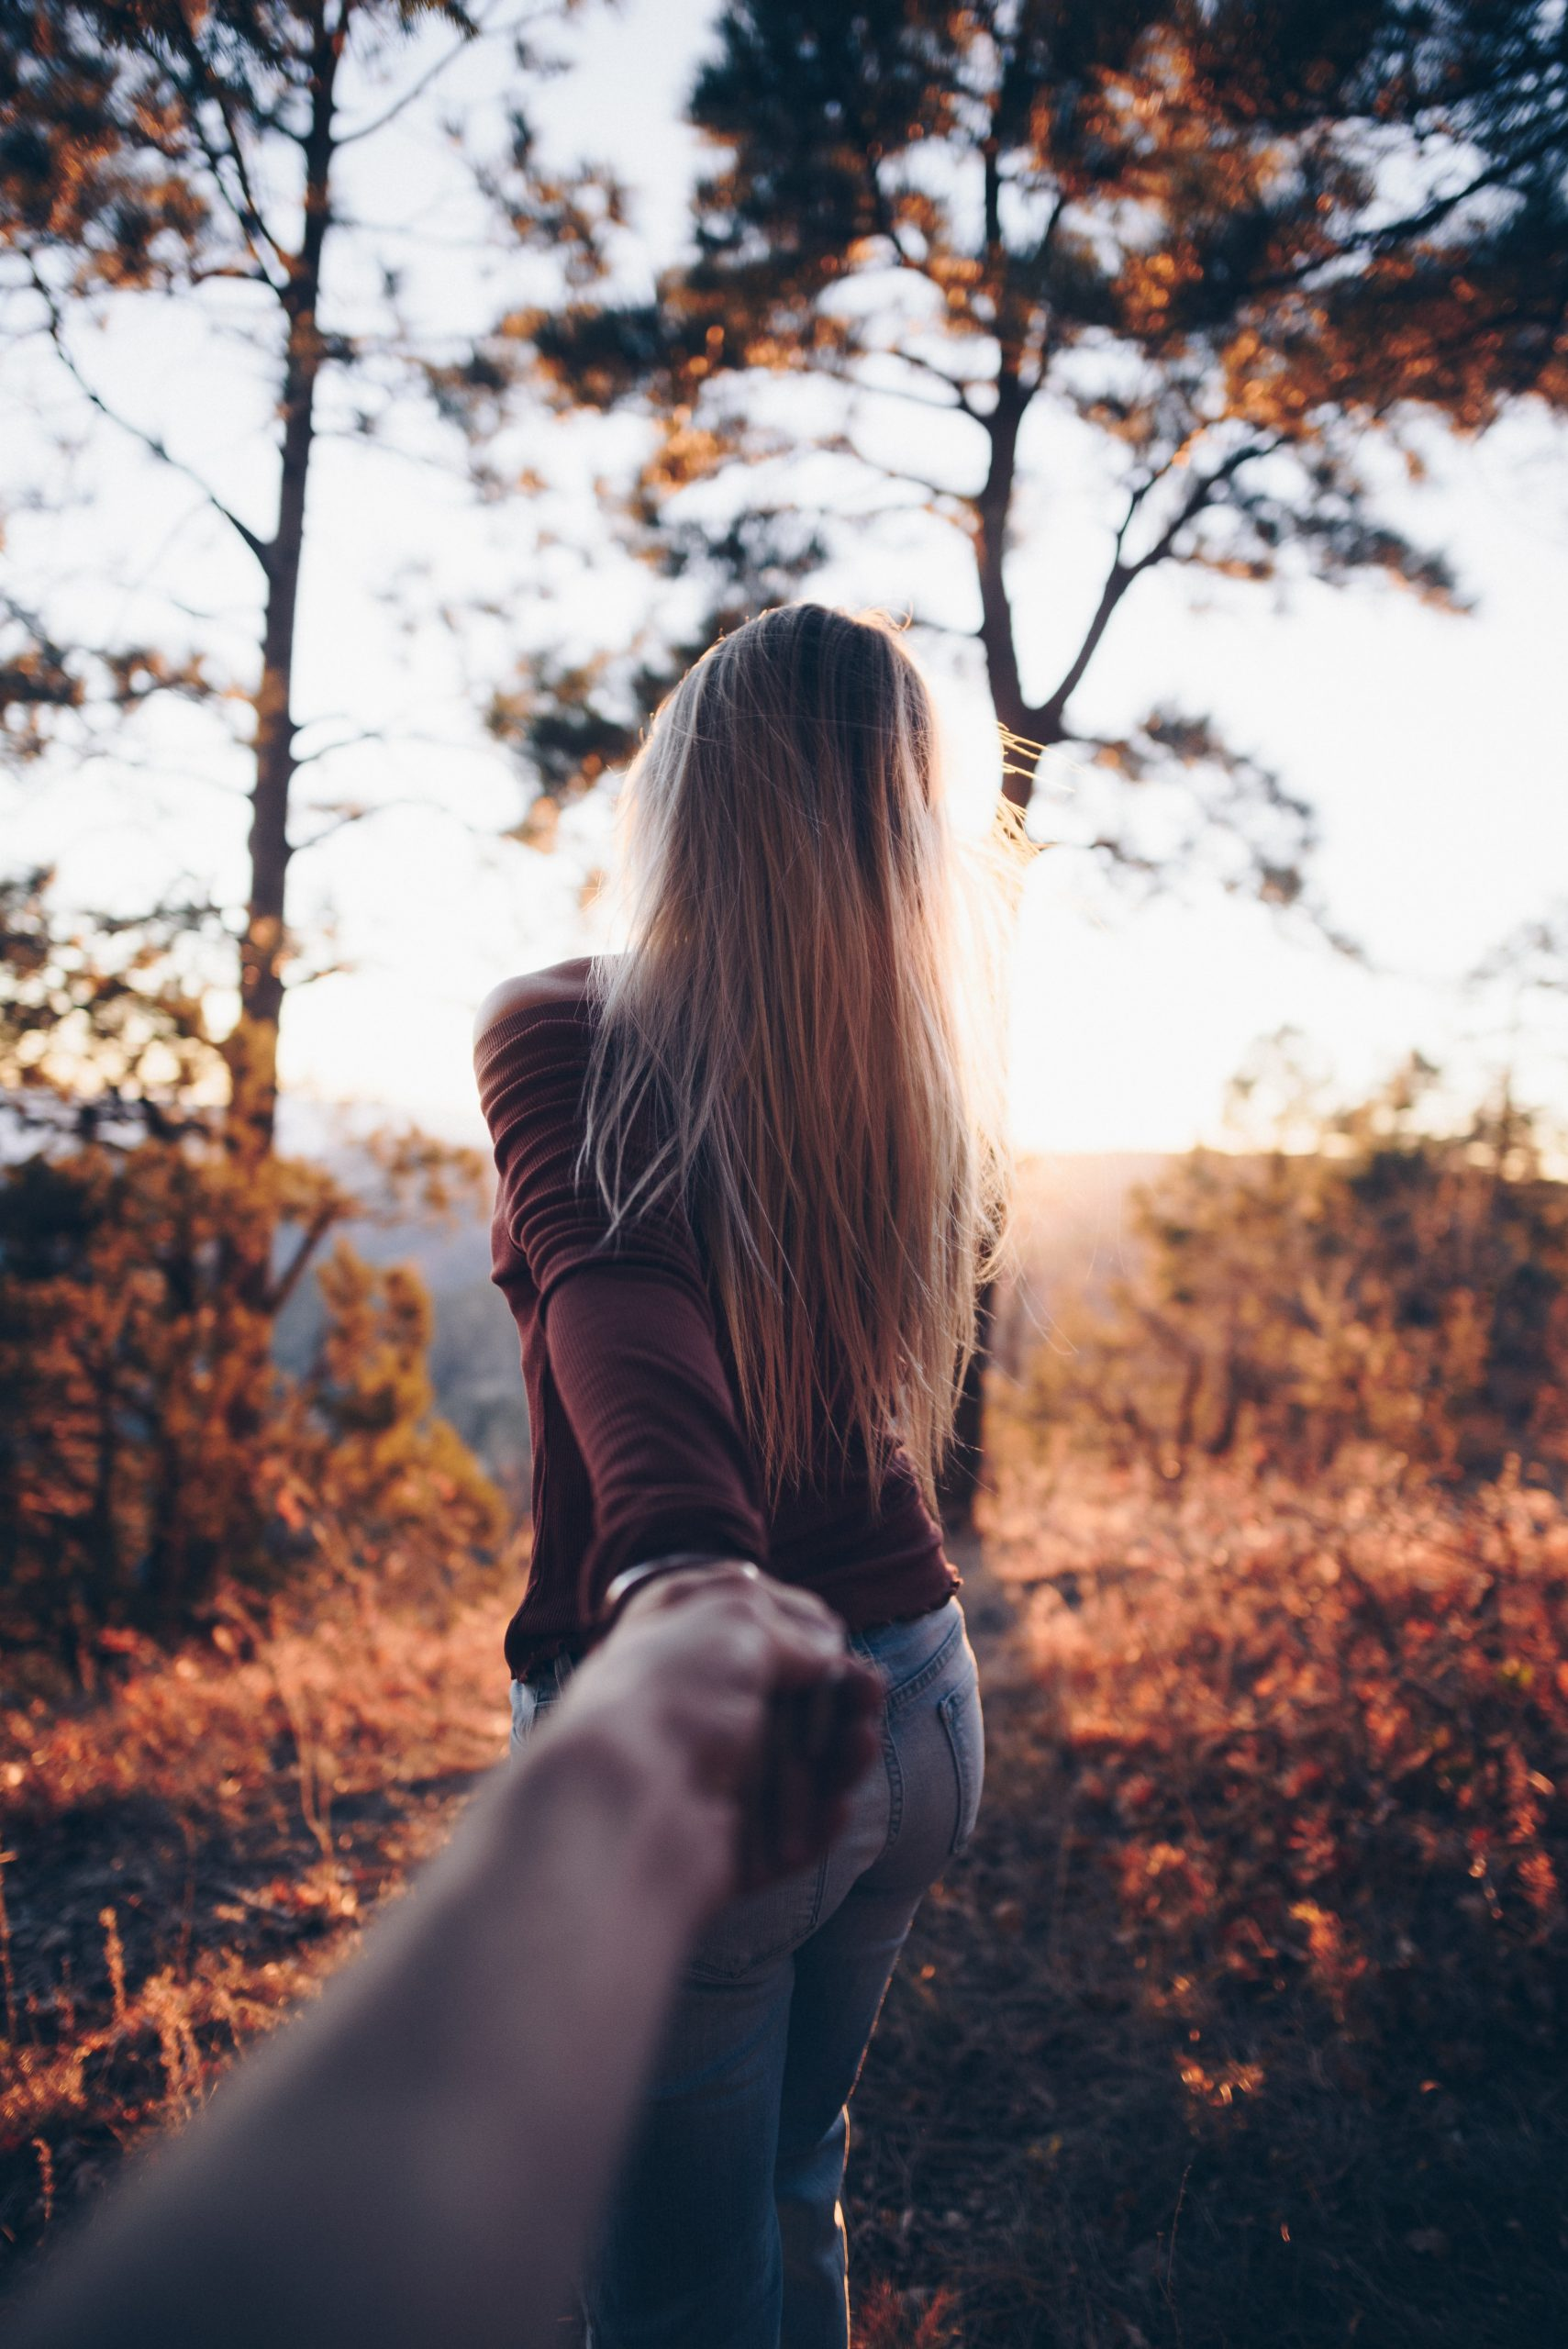 Woman wallpaper holding someone's hand